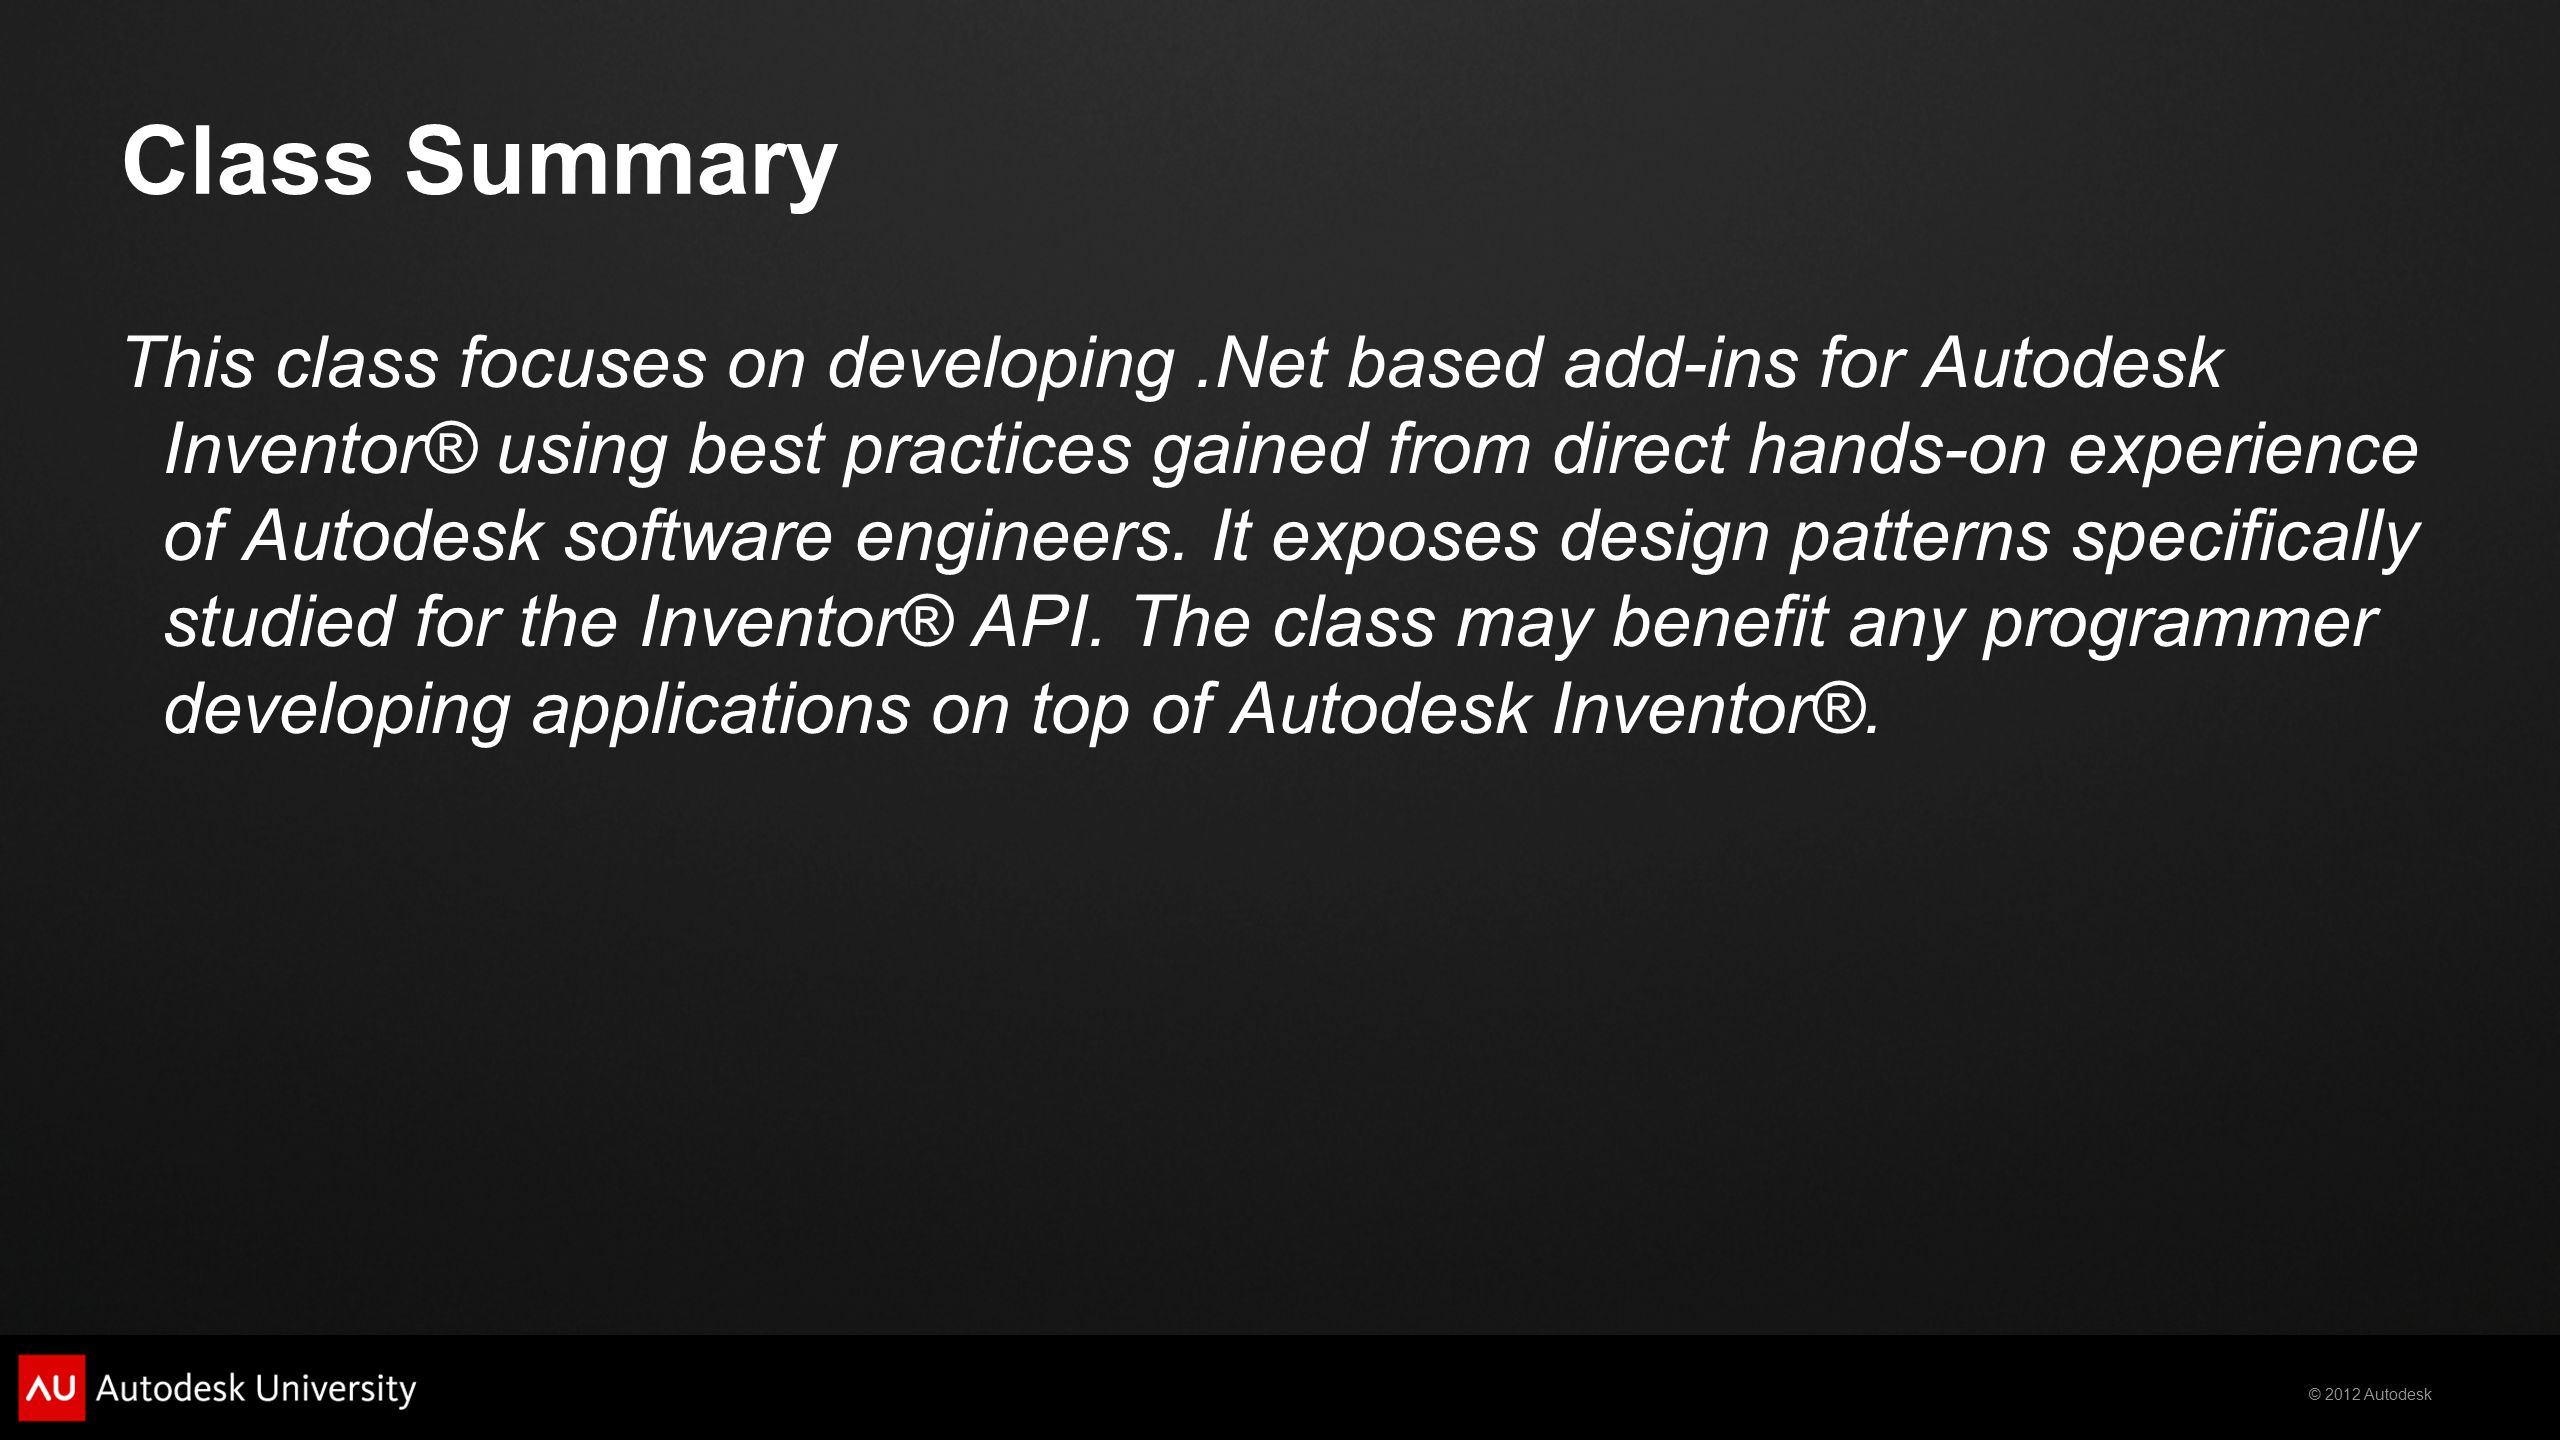 © 2012 Autodesk Class Summary This class focuses on developing.Net based add-ins for Autodesk Inventor® using best practices gained from direct hands-